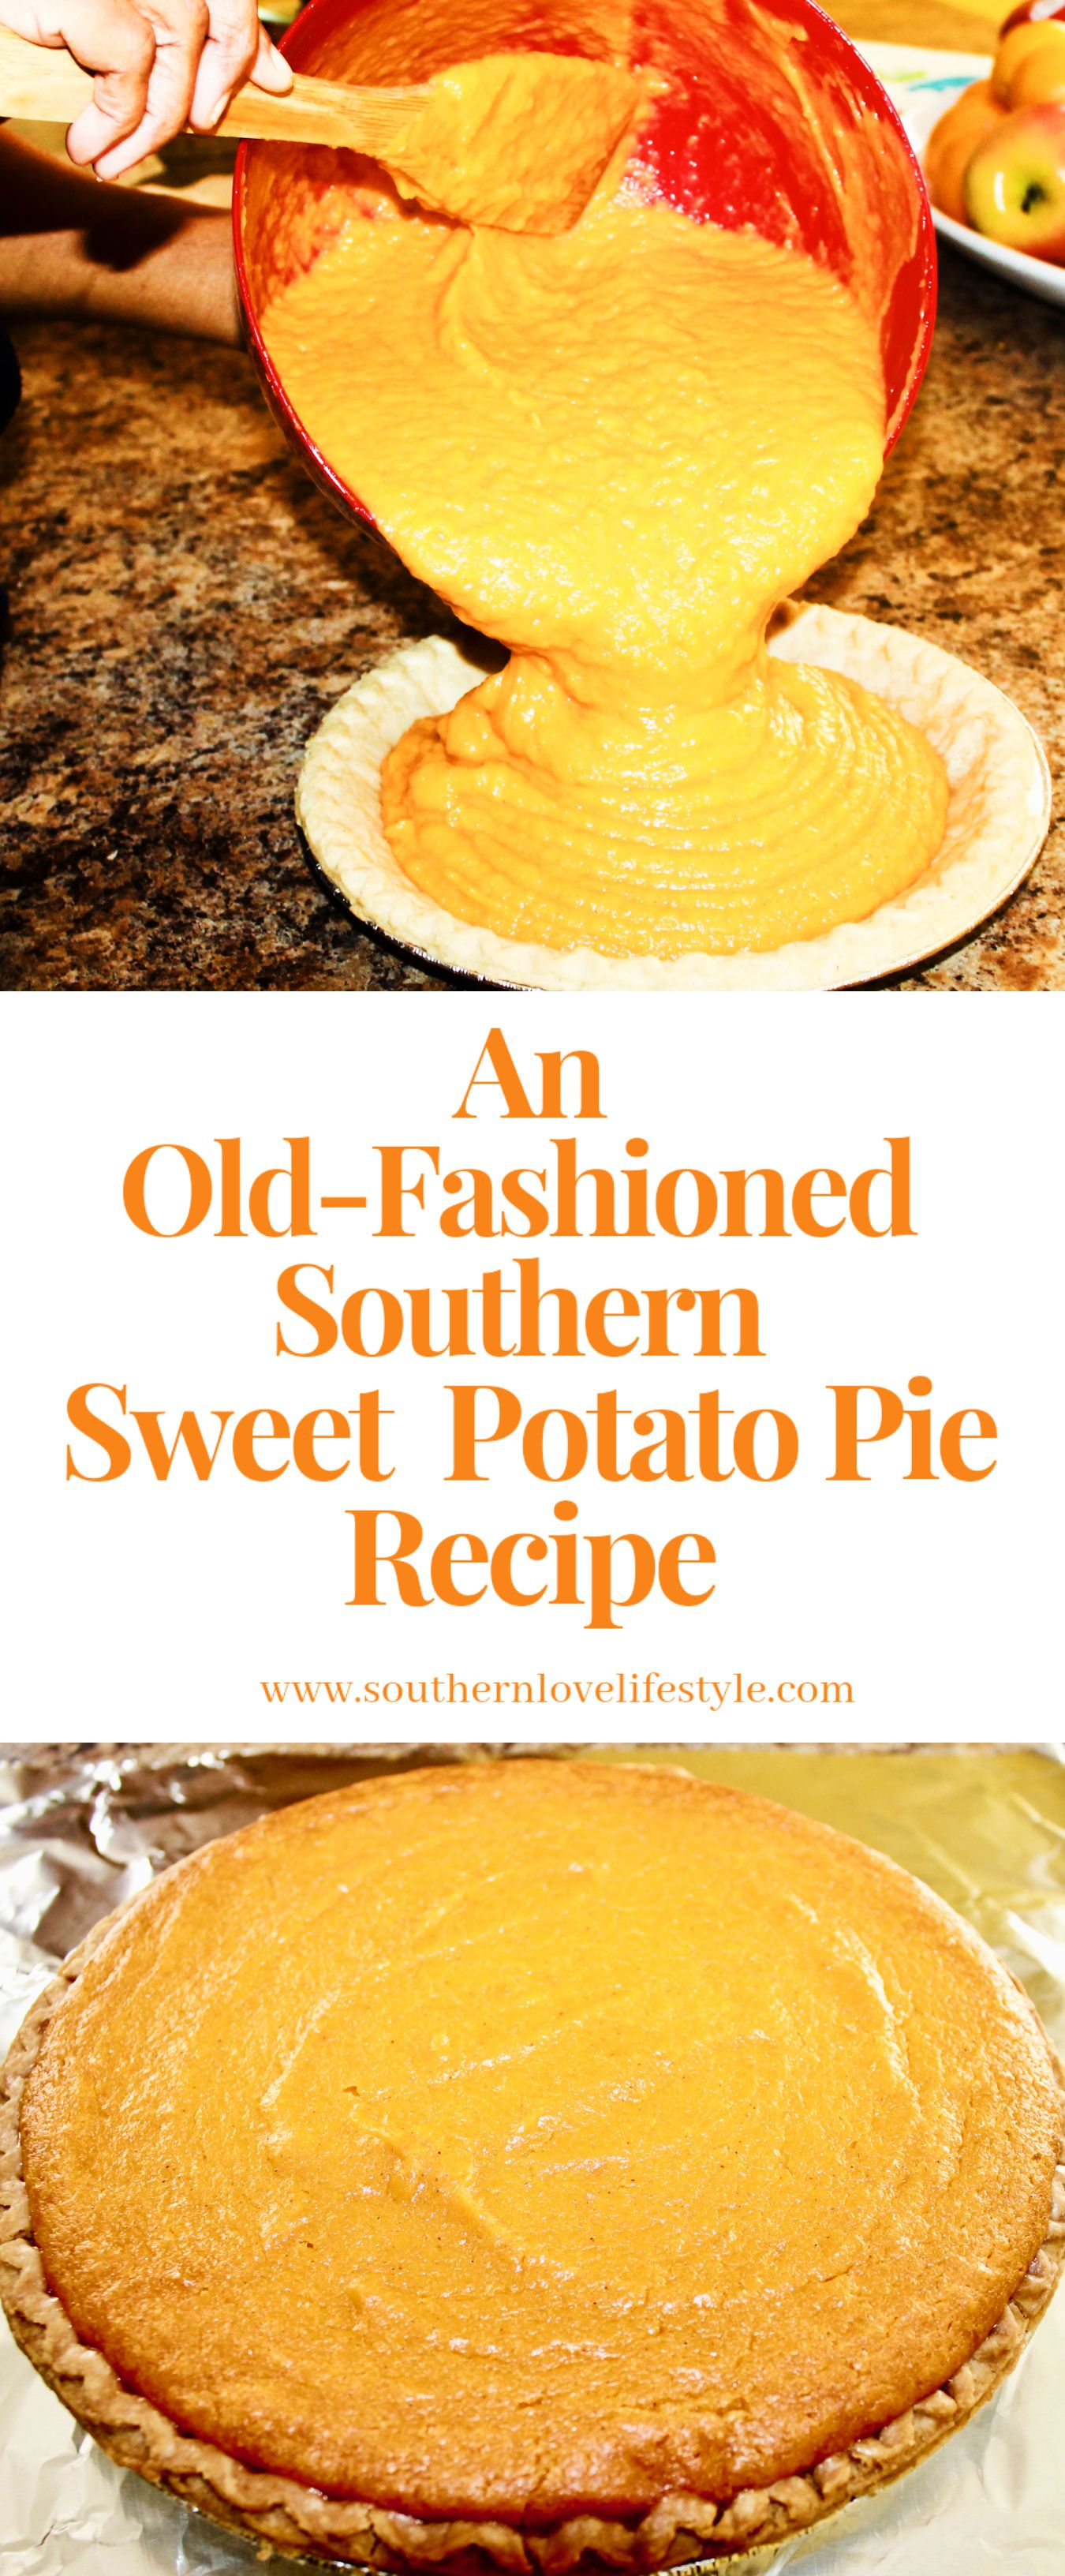 An Old-Fashioned Southern Sweet Potato Pie Recipe